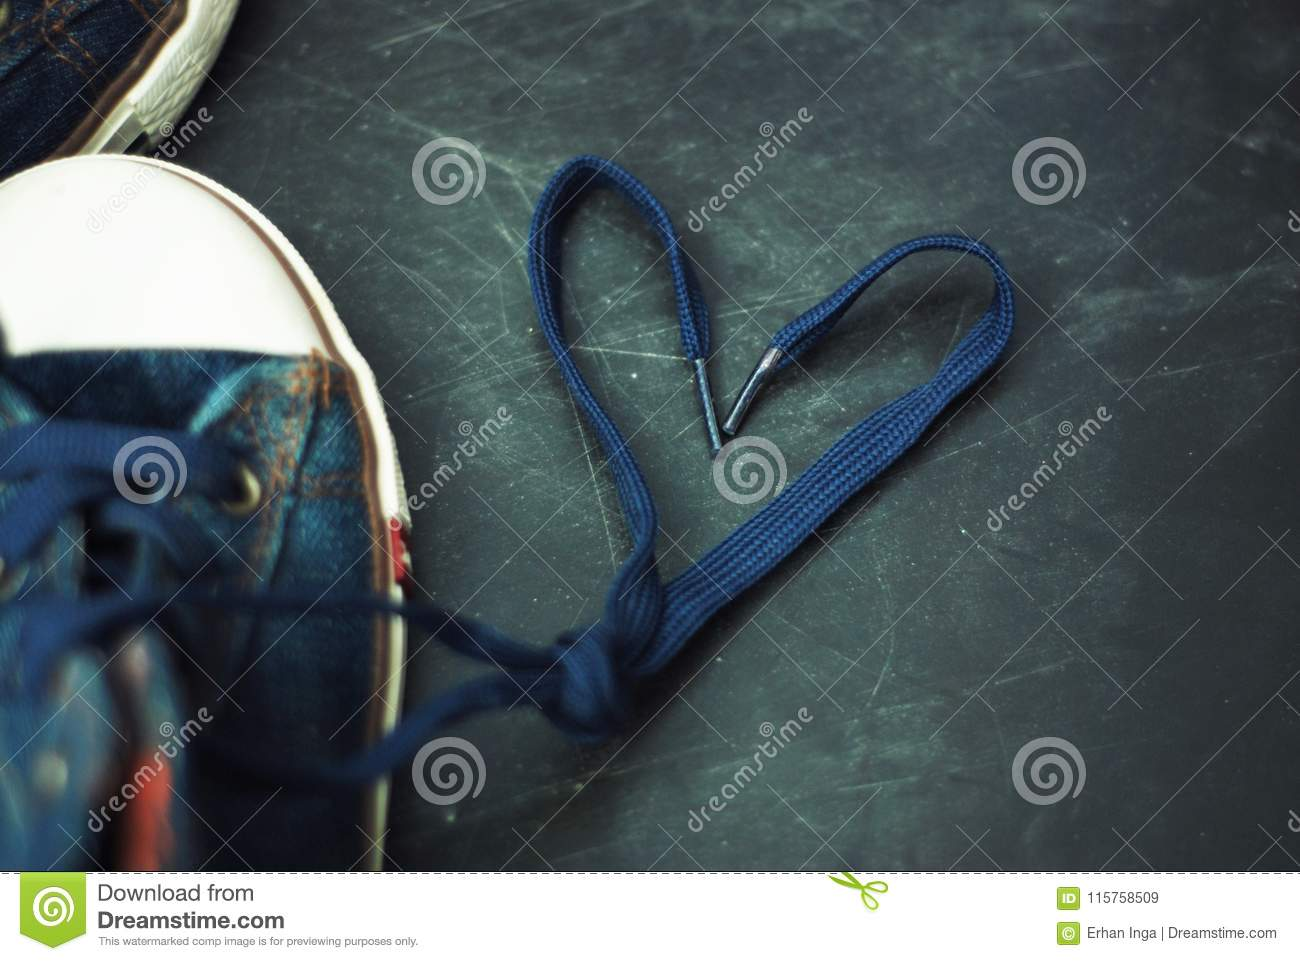 Sport blue Jeans Boots Children Heart Shape Laces over Textured Grounge Chalckboard. Toned. Education and Parenting